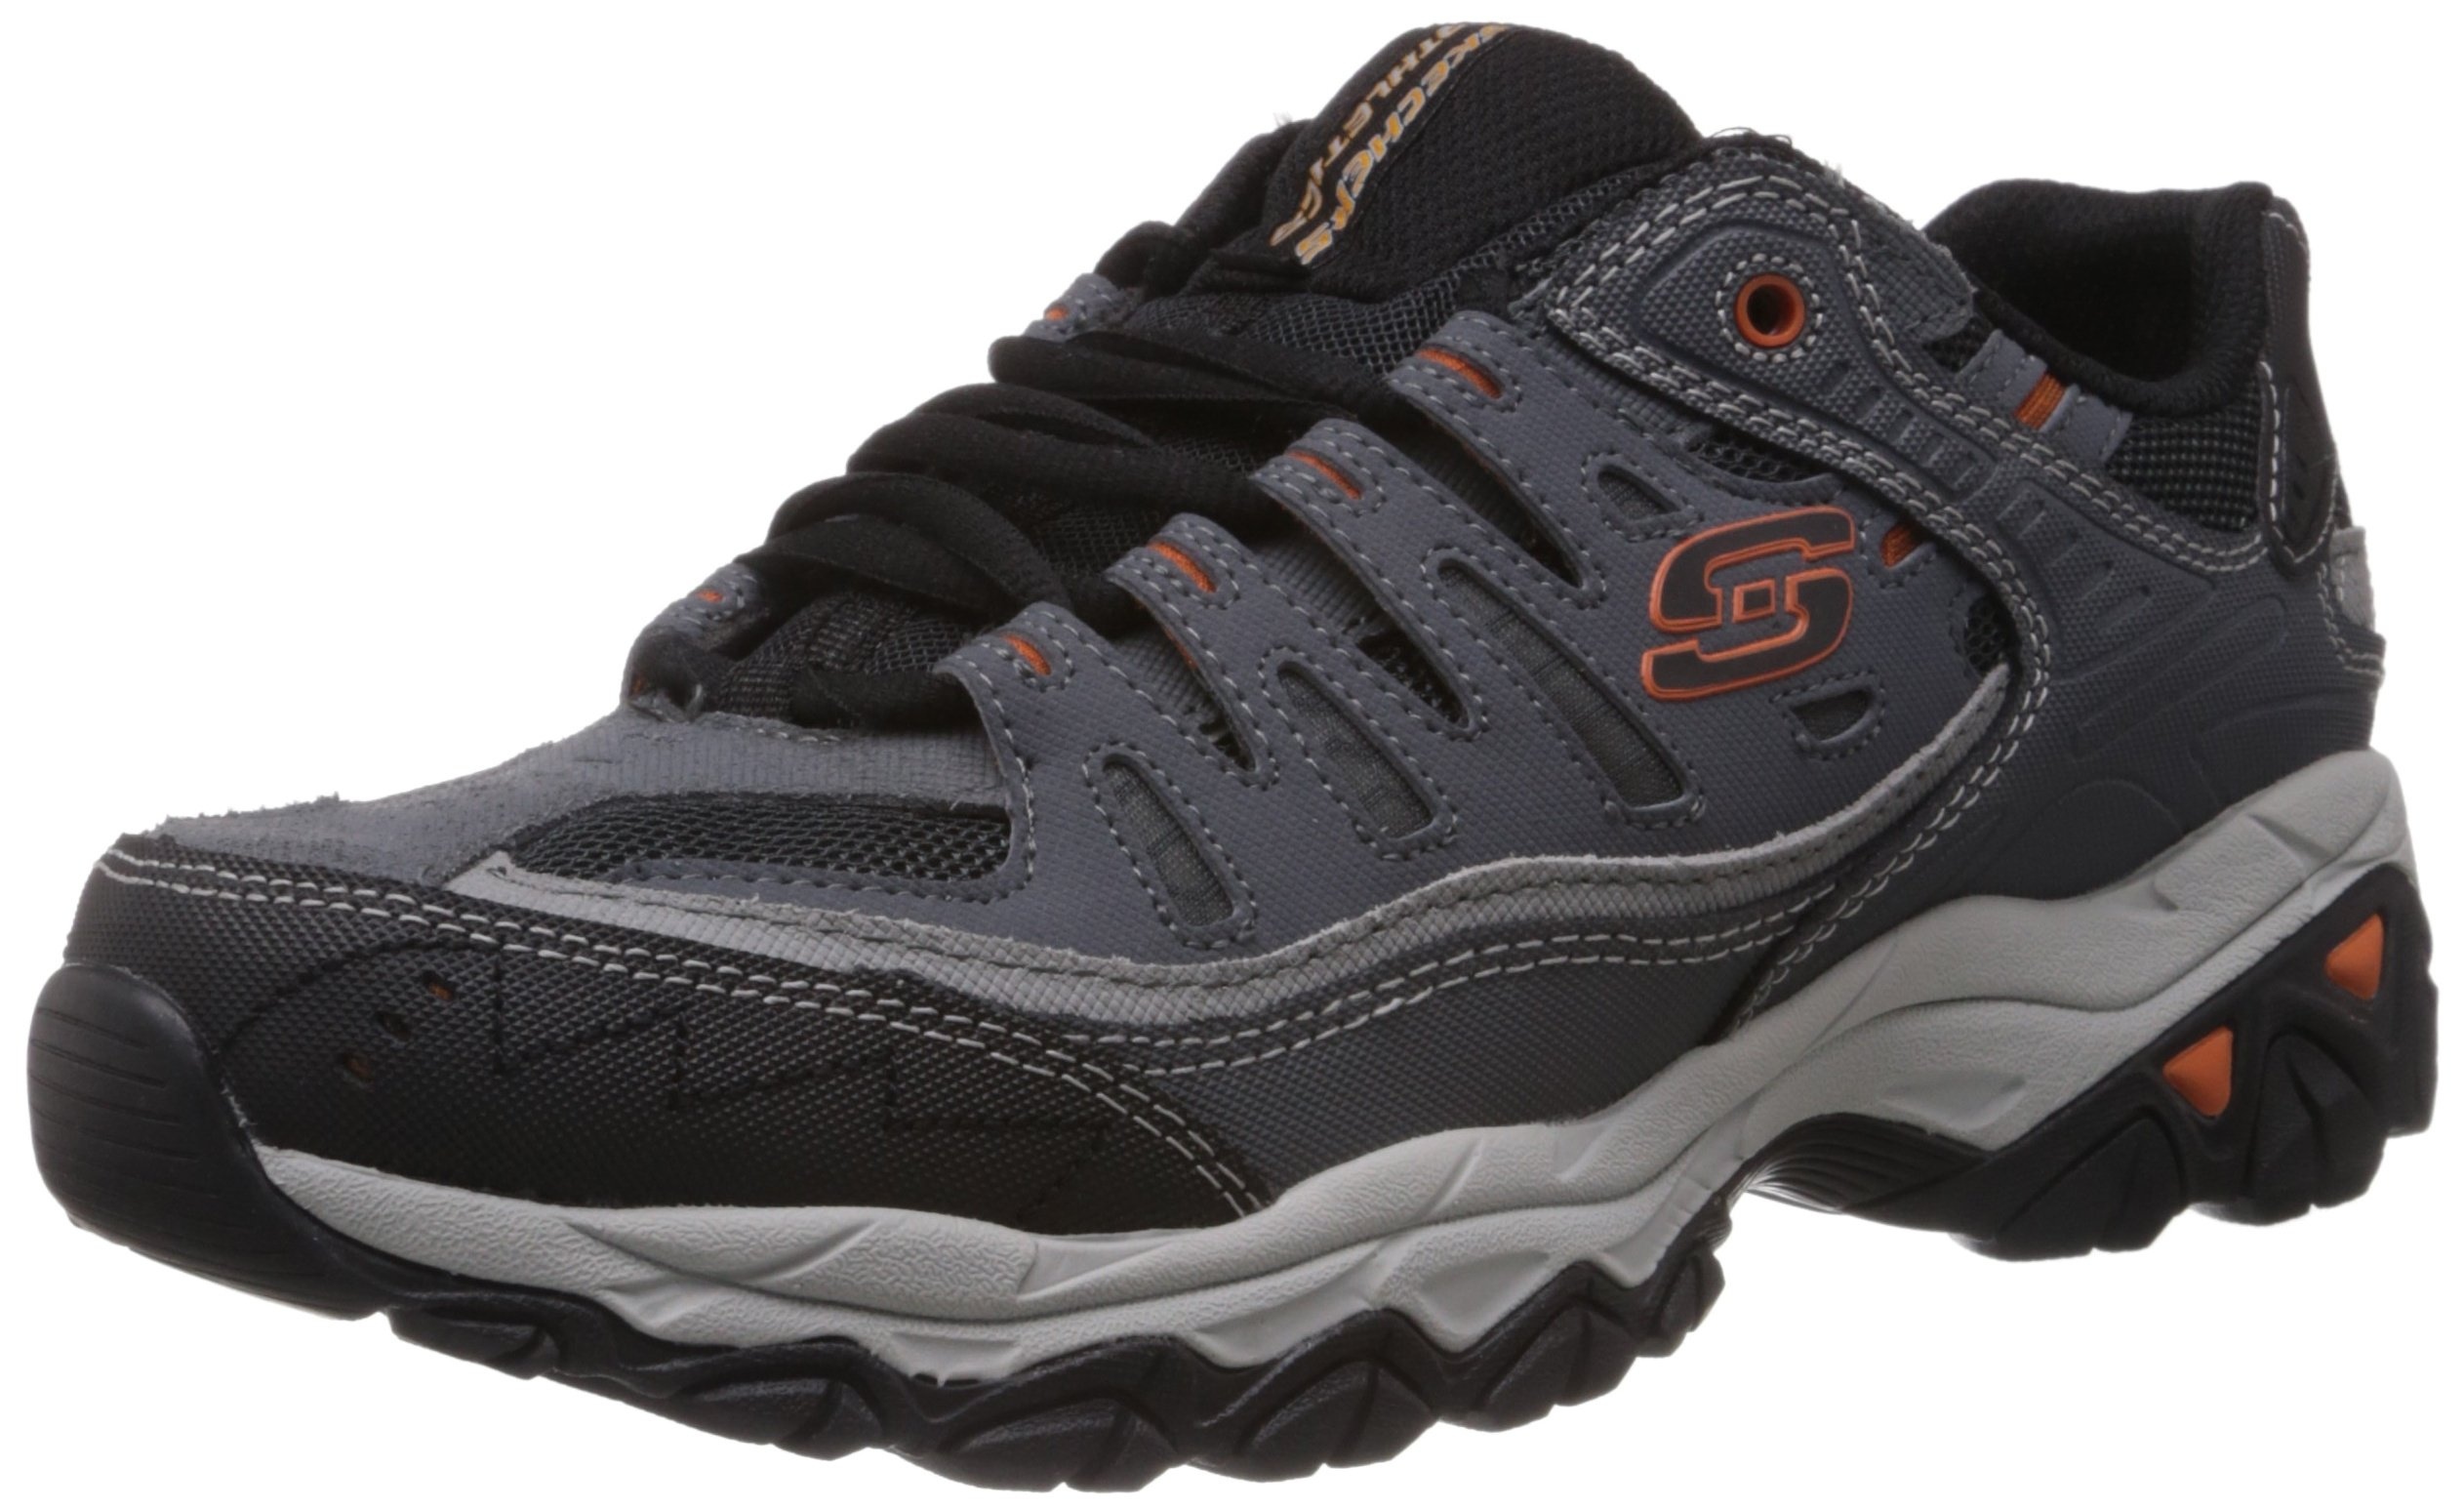 Skechers Sport Men's Afterburn Memory Foam Lace-Up Sneaker, Charcoal, 8.5 4E US by Skechers